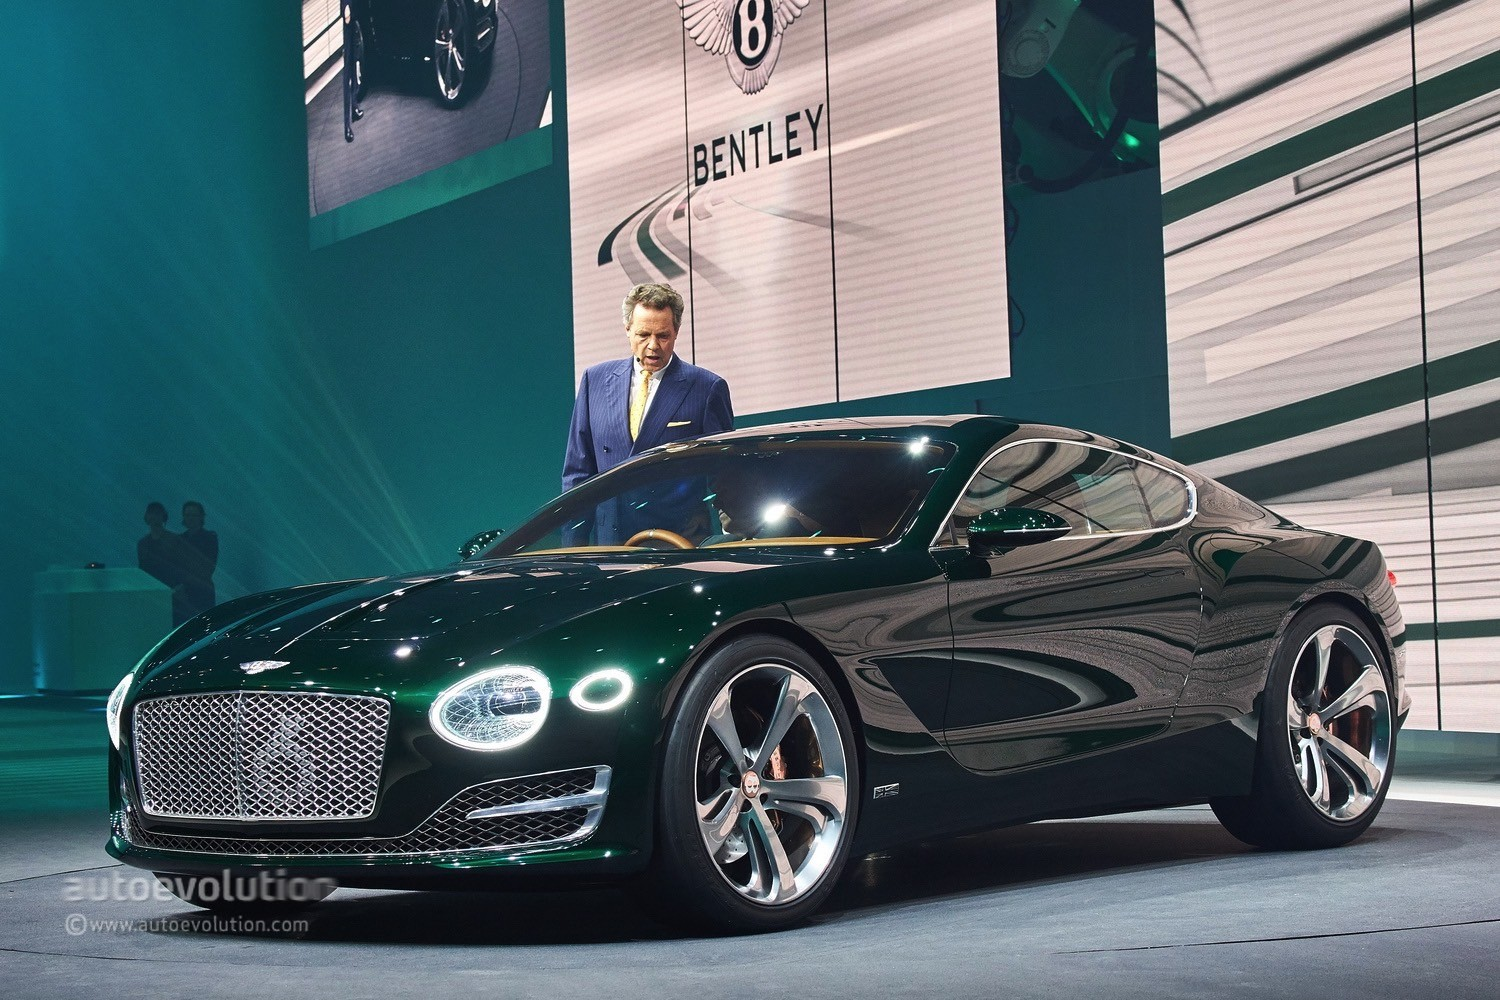 bentley sports exp speed continental gt electric edition coming powertrain rendered geneva surprise autoevolution confirmed biggest motor sounds cylinder motion